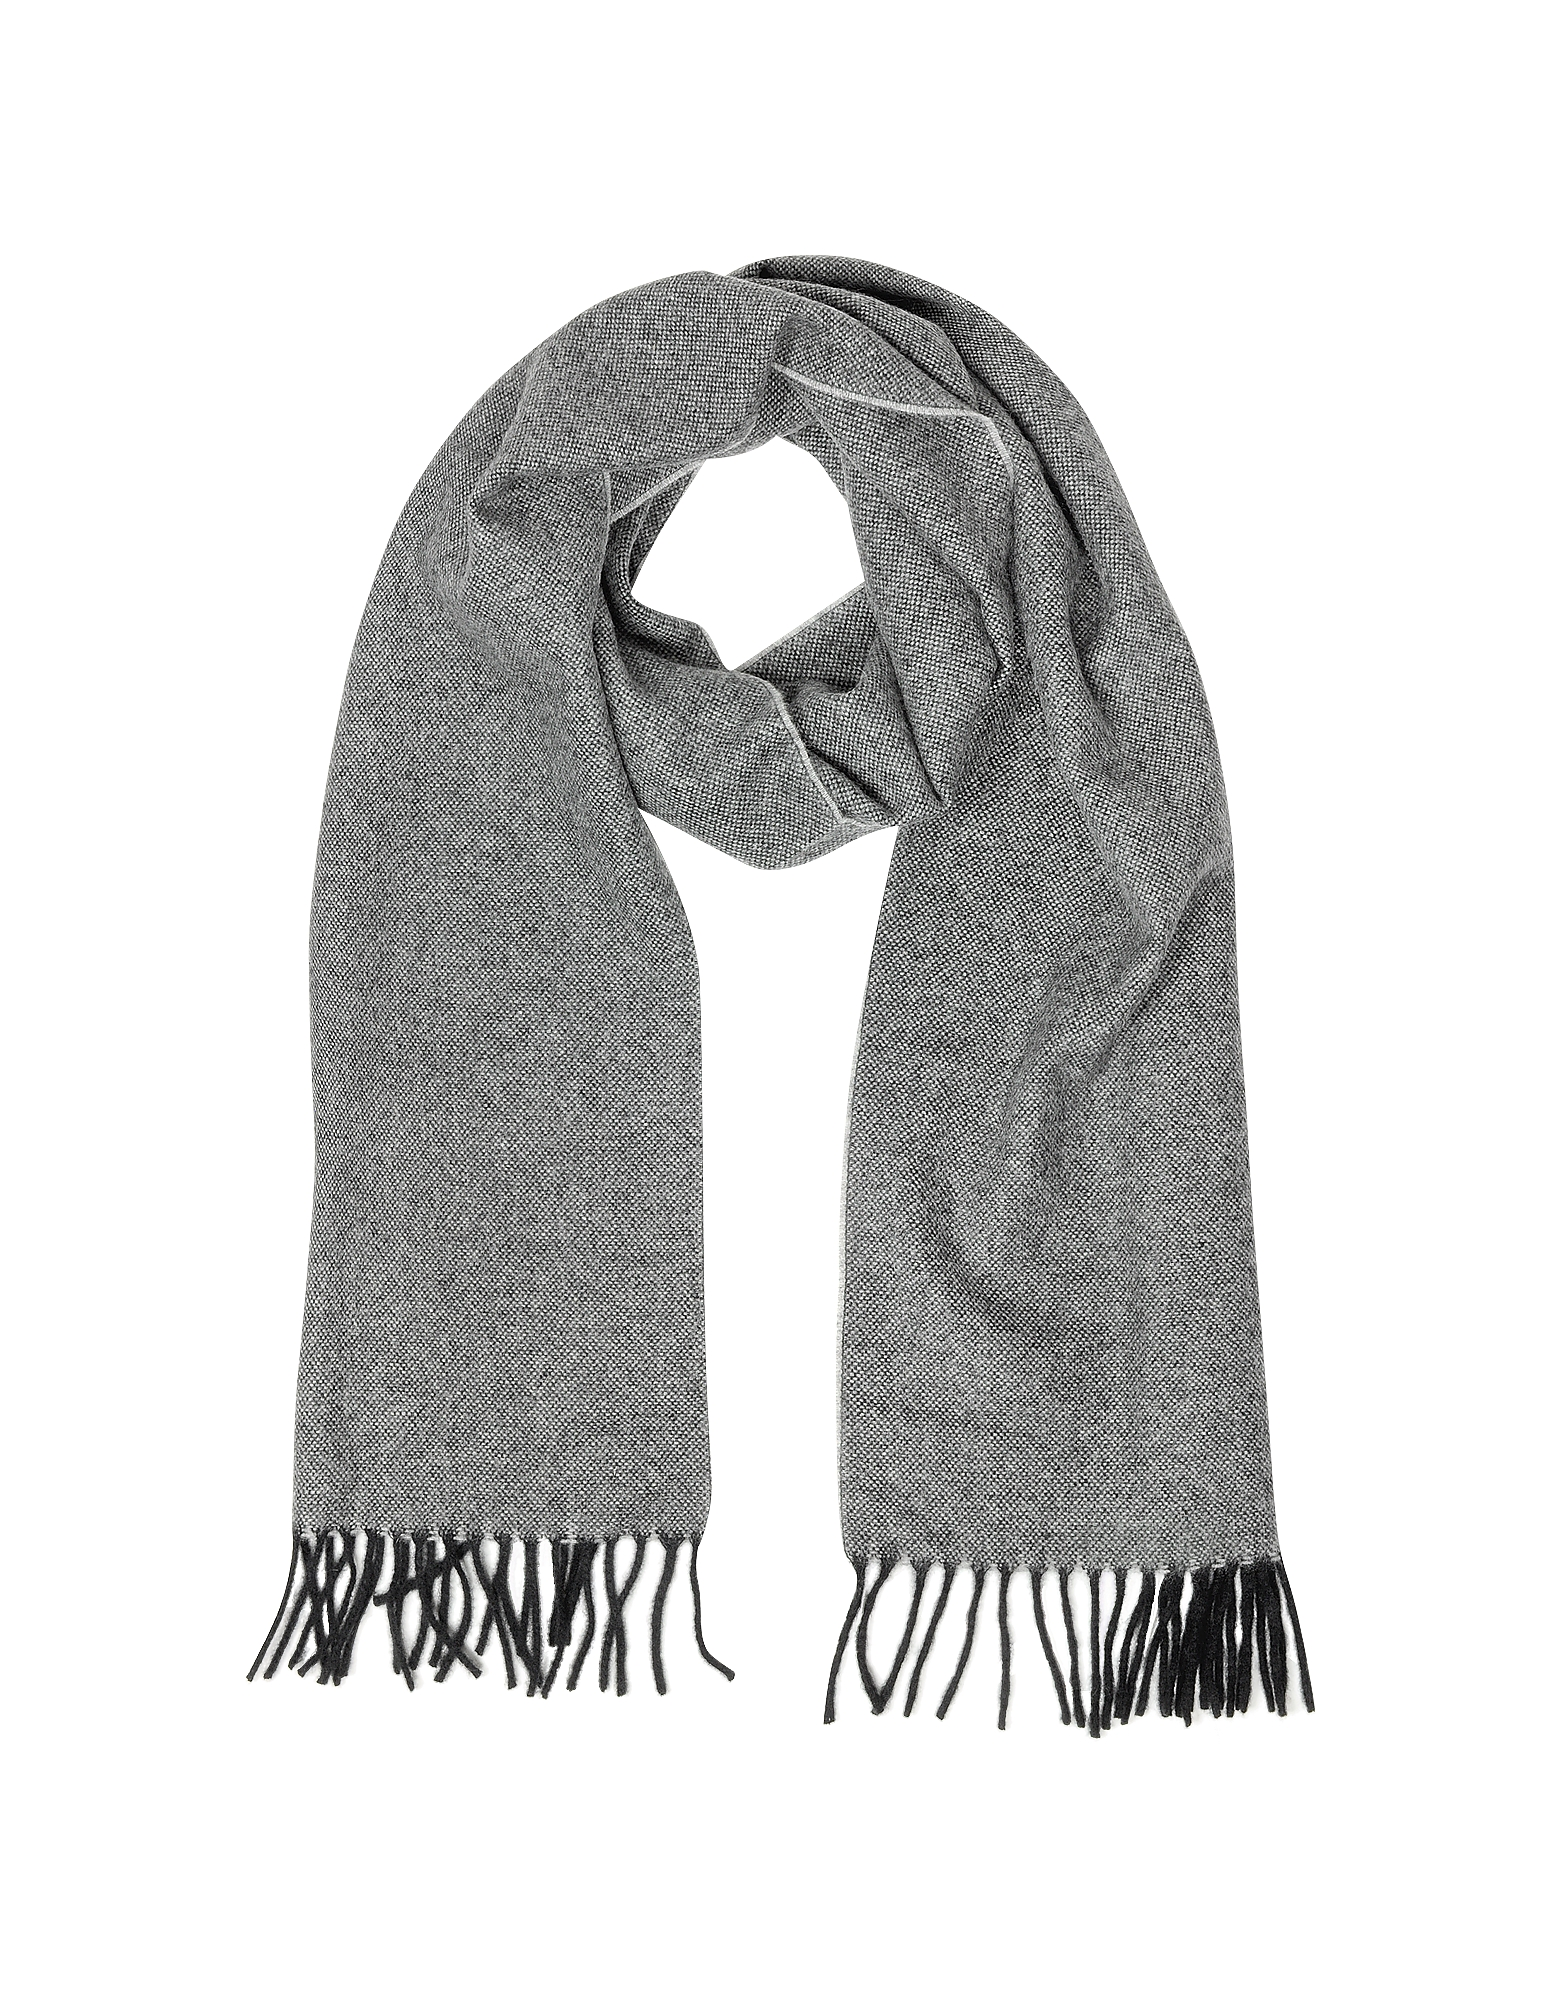 Two Tone Pure Cashmere Men's Scarf w/Fringes от Forzieri.com INT